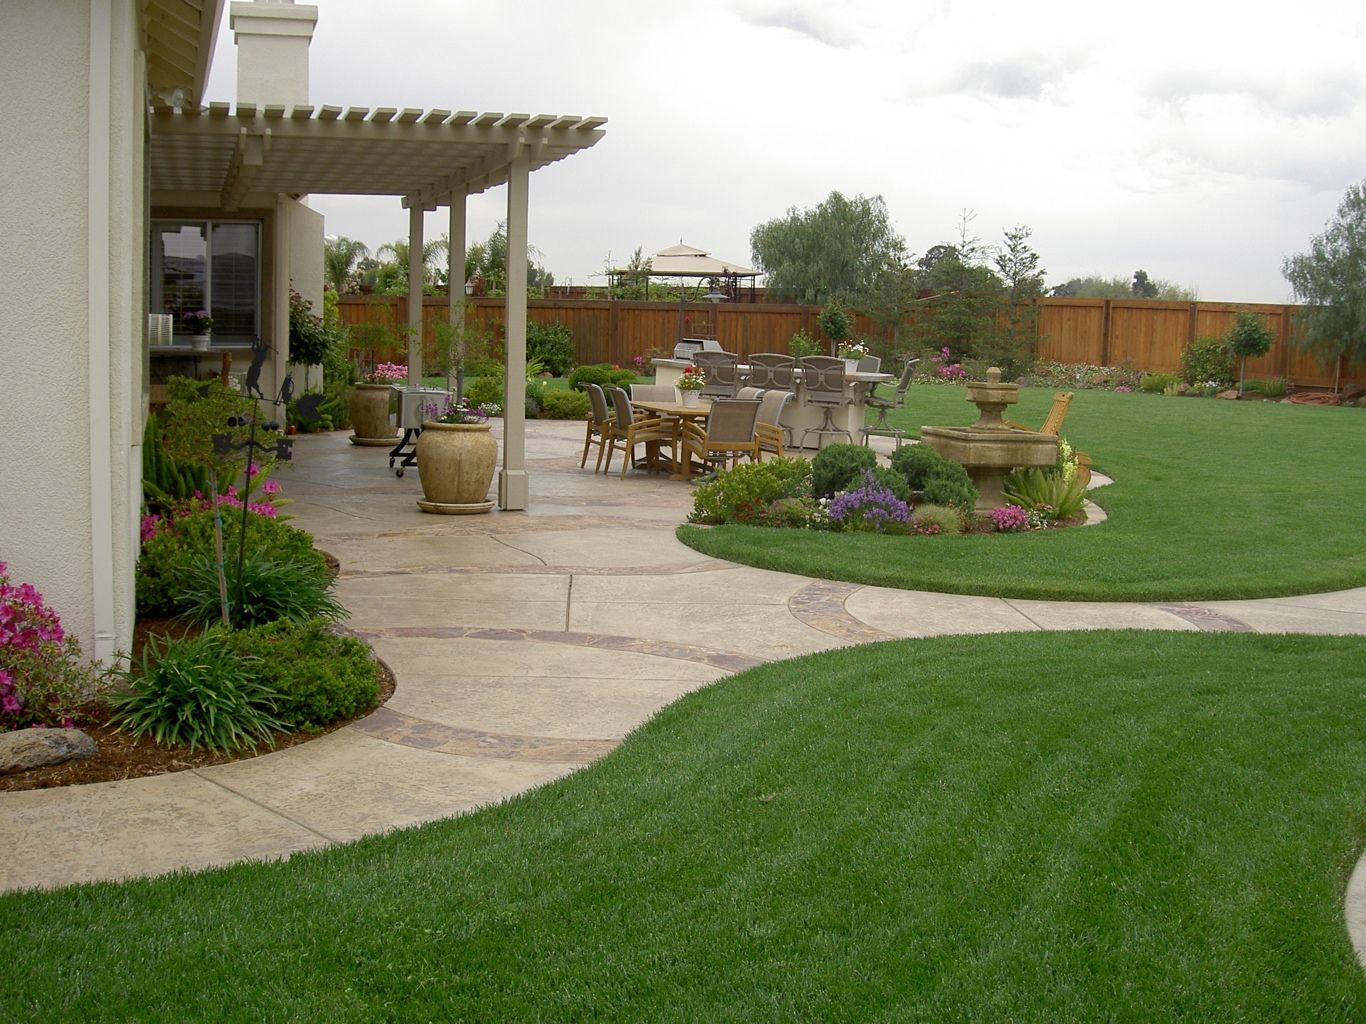 Landscape Design Ideas Backyard diy backyard landscaping design ideas 1000 Images About Backyard Landscape Ideas On Pinterest Backyard Landscaping Backyards And Landscapes